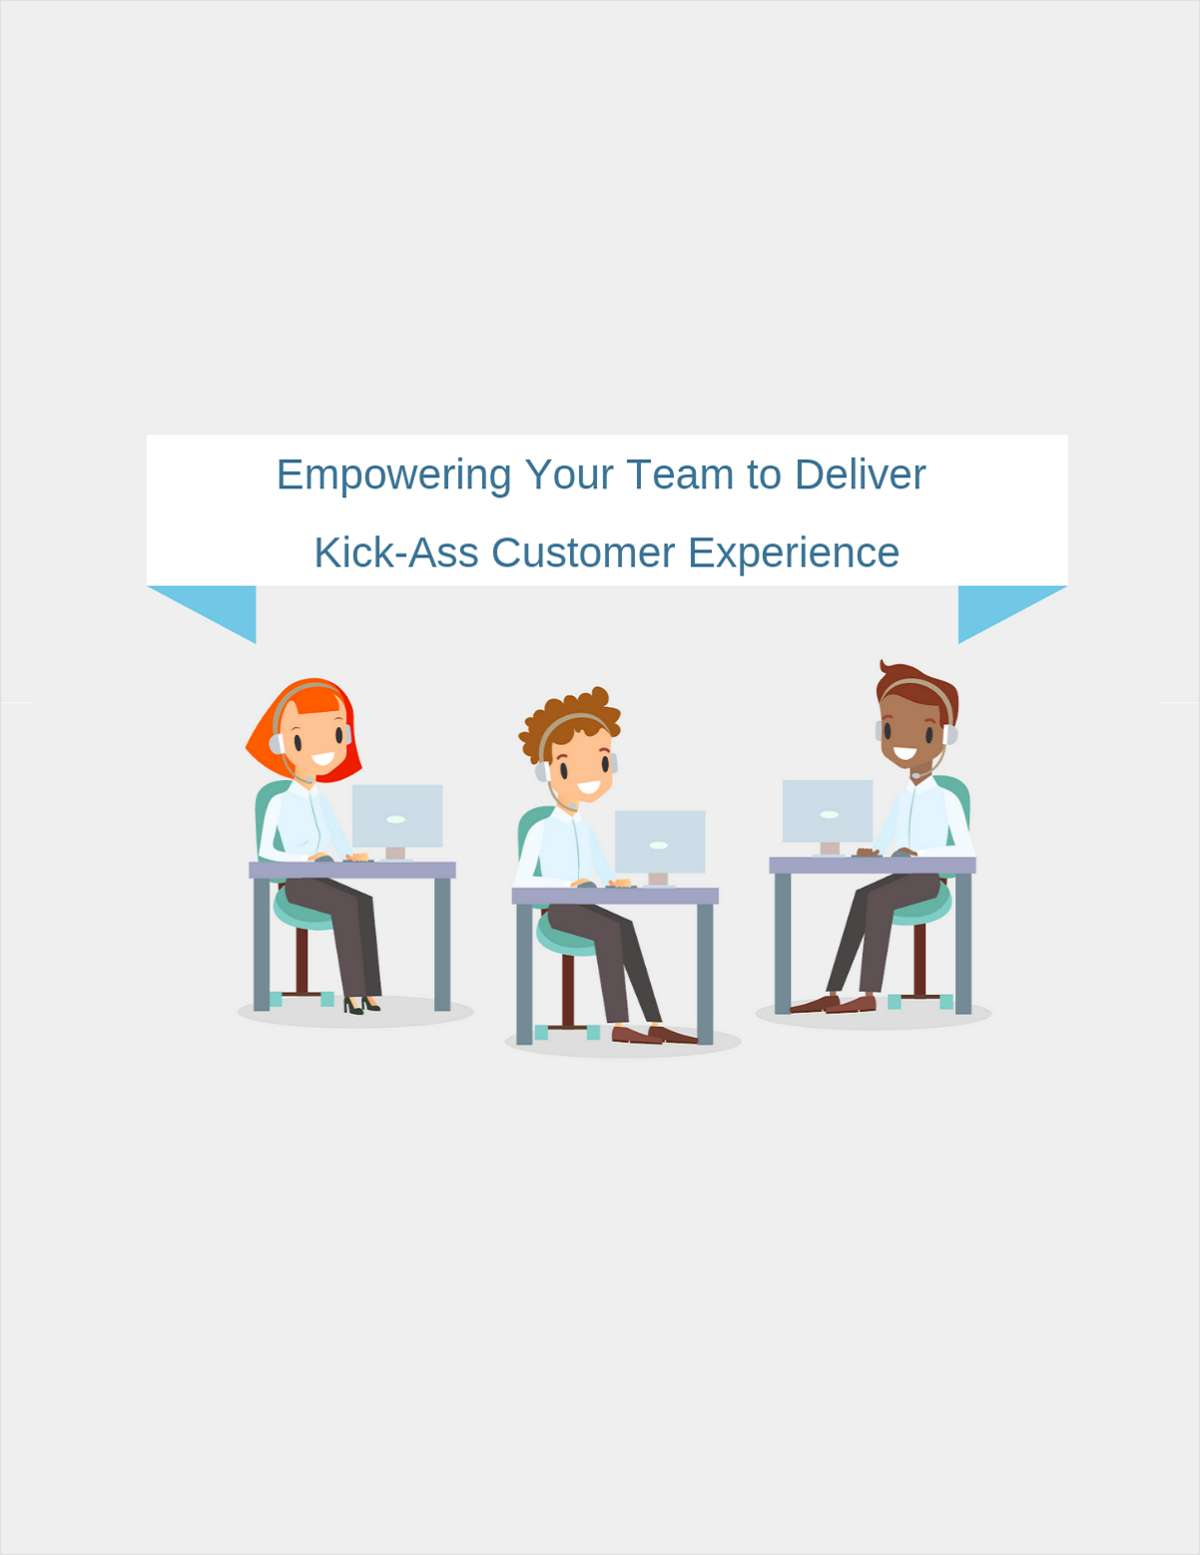 Empowering Your Team to Deliver Kick-Ass Customer Experience